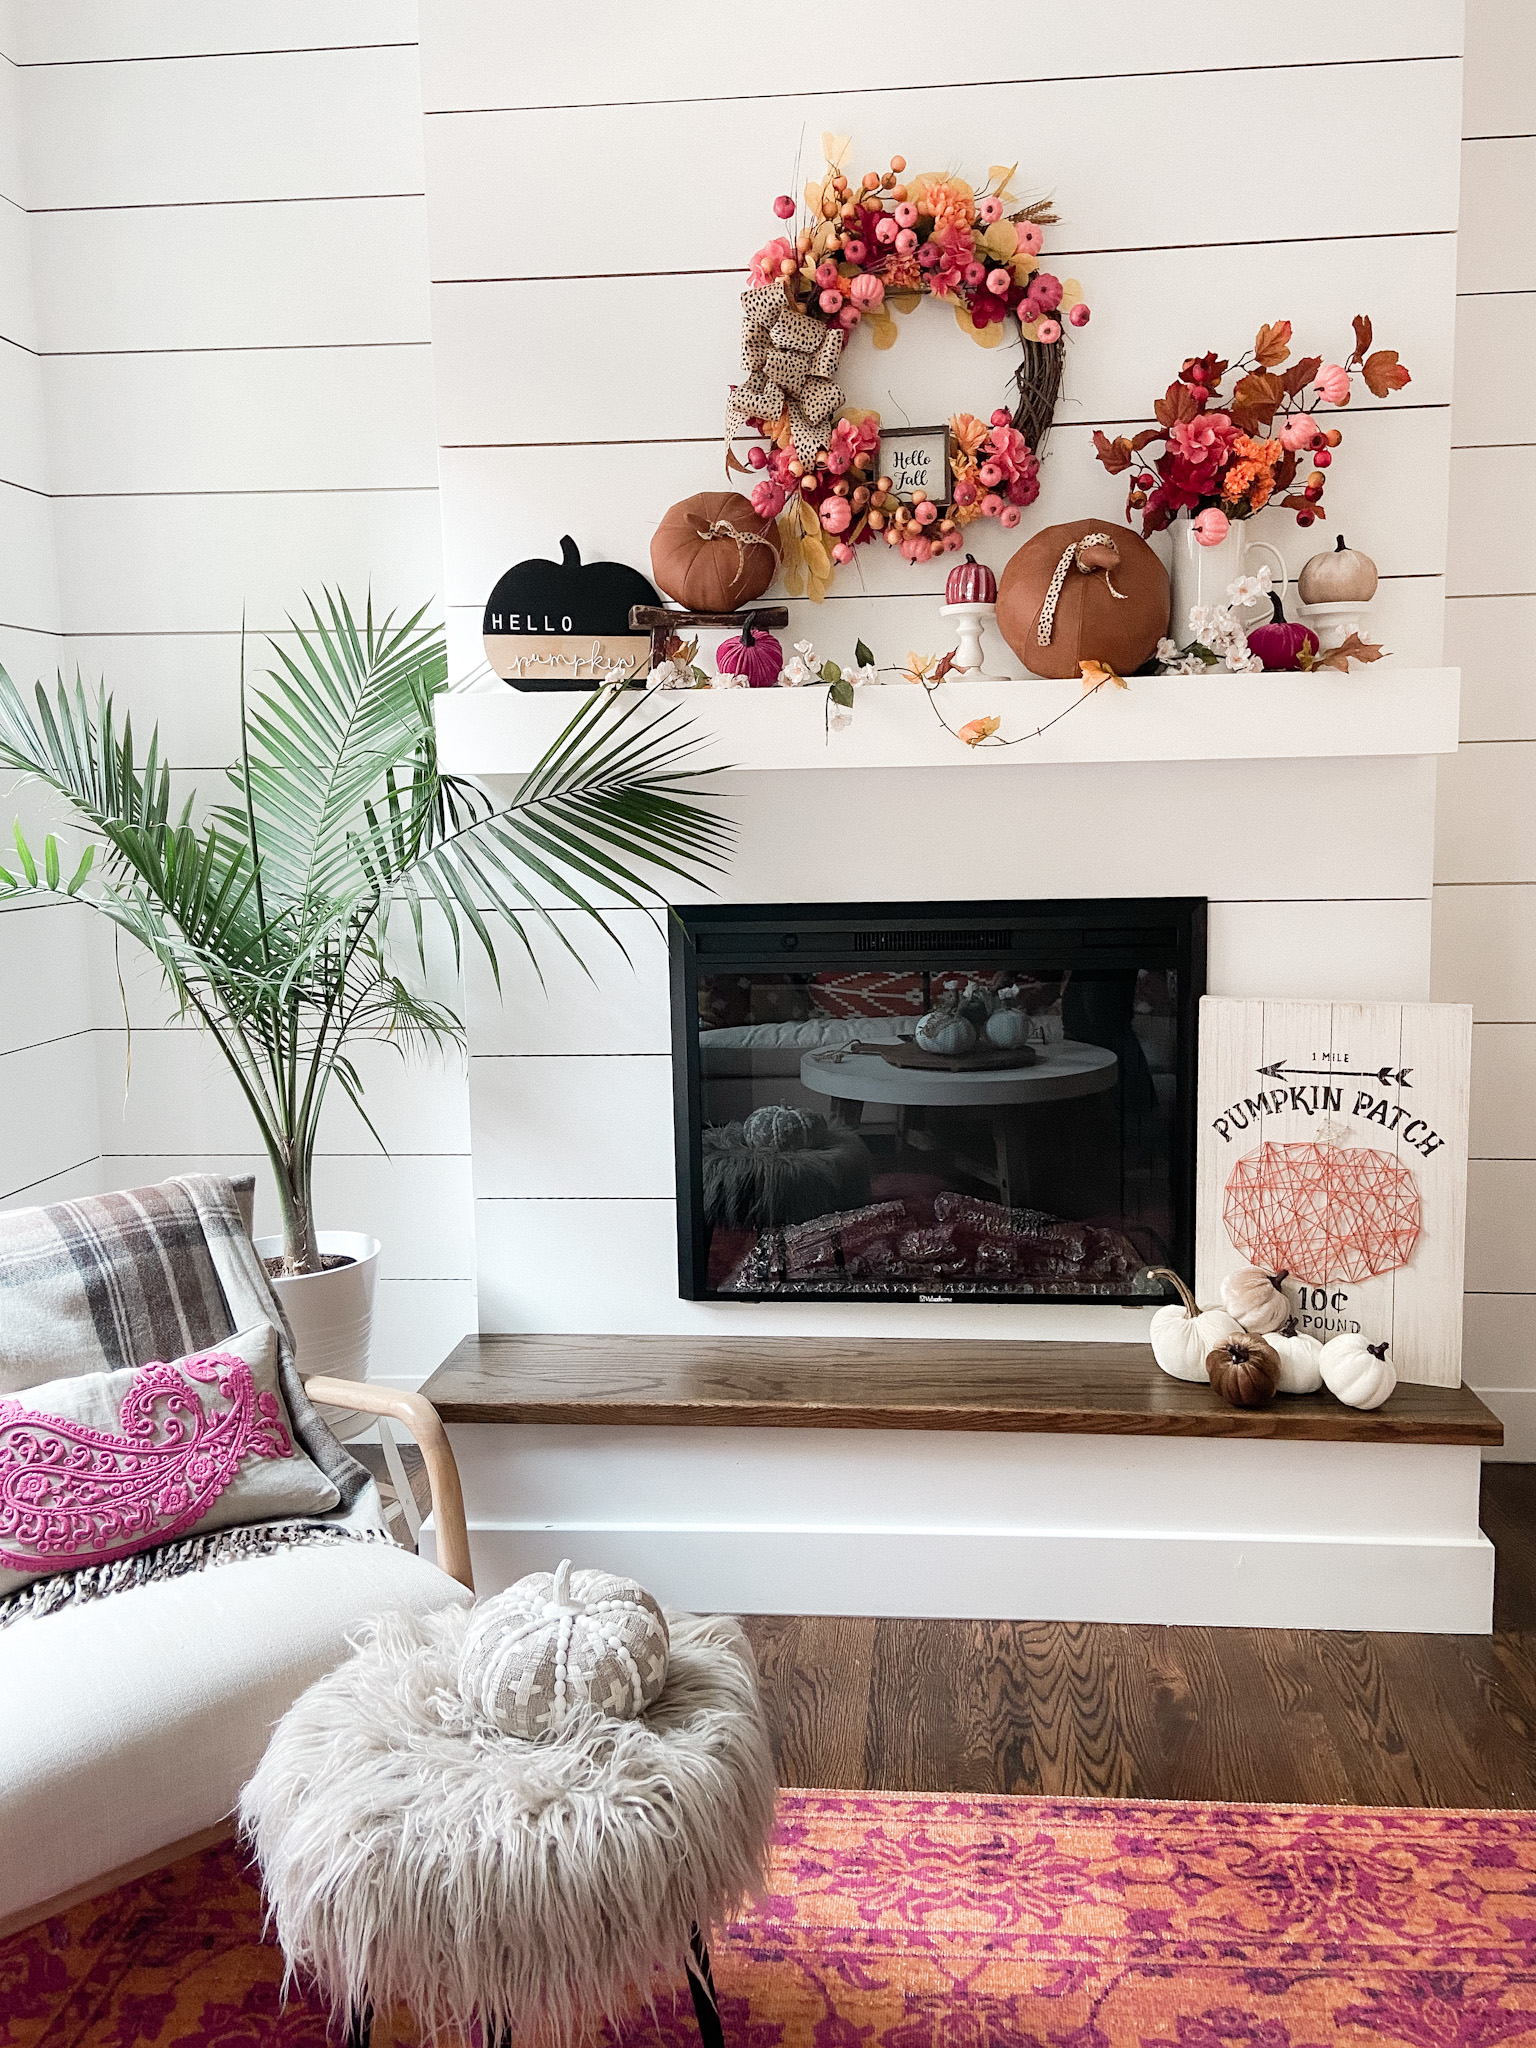 Boho Cottage Colorful Fall Home Tour. Bring warm and cozy vibes into your home for fall with these easy fall decorating ideas for your porch, entryway, kitchen, family room and stairs.